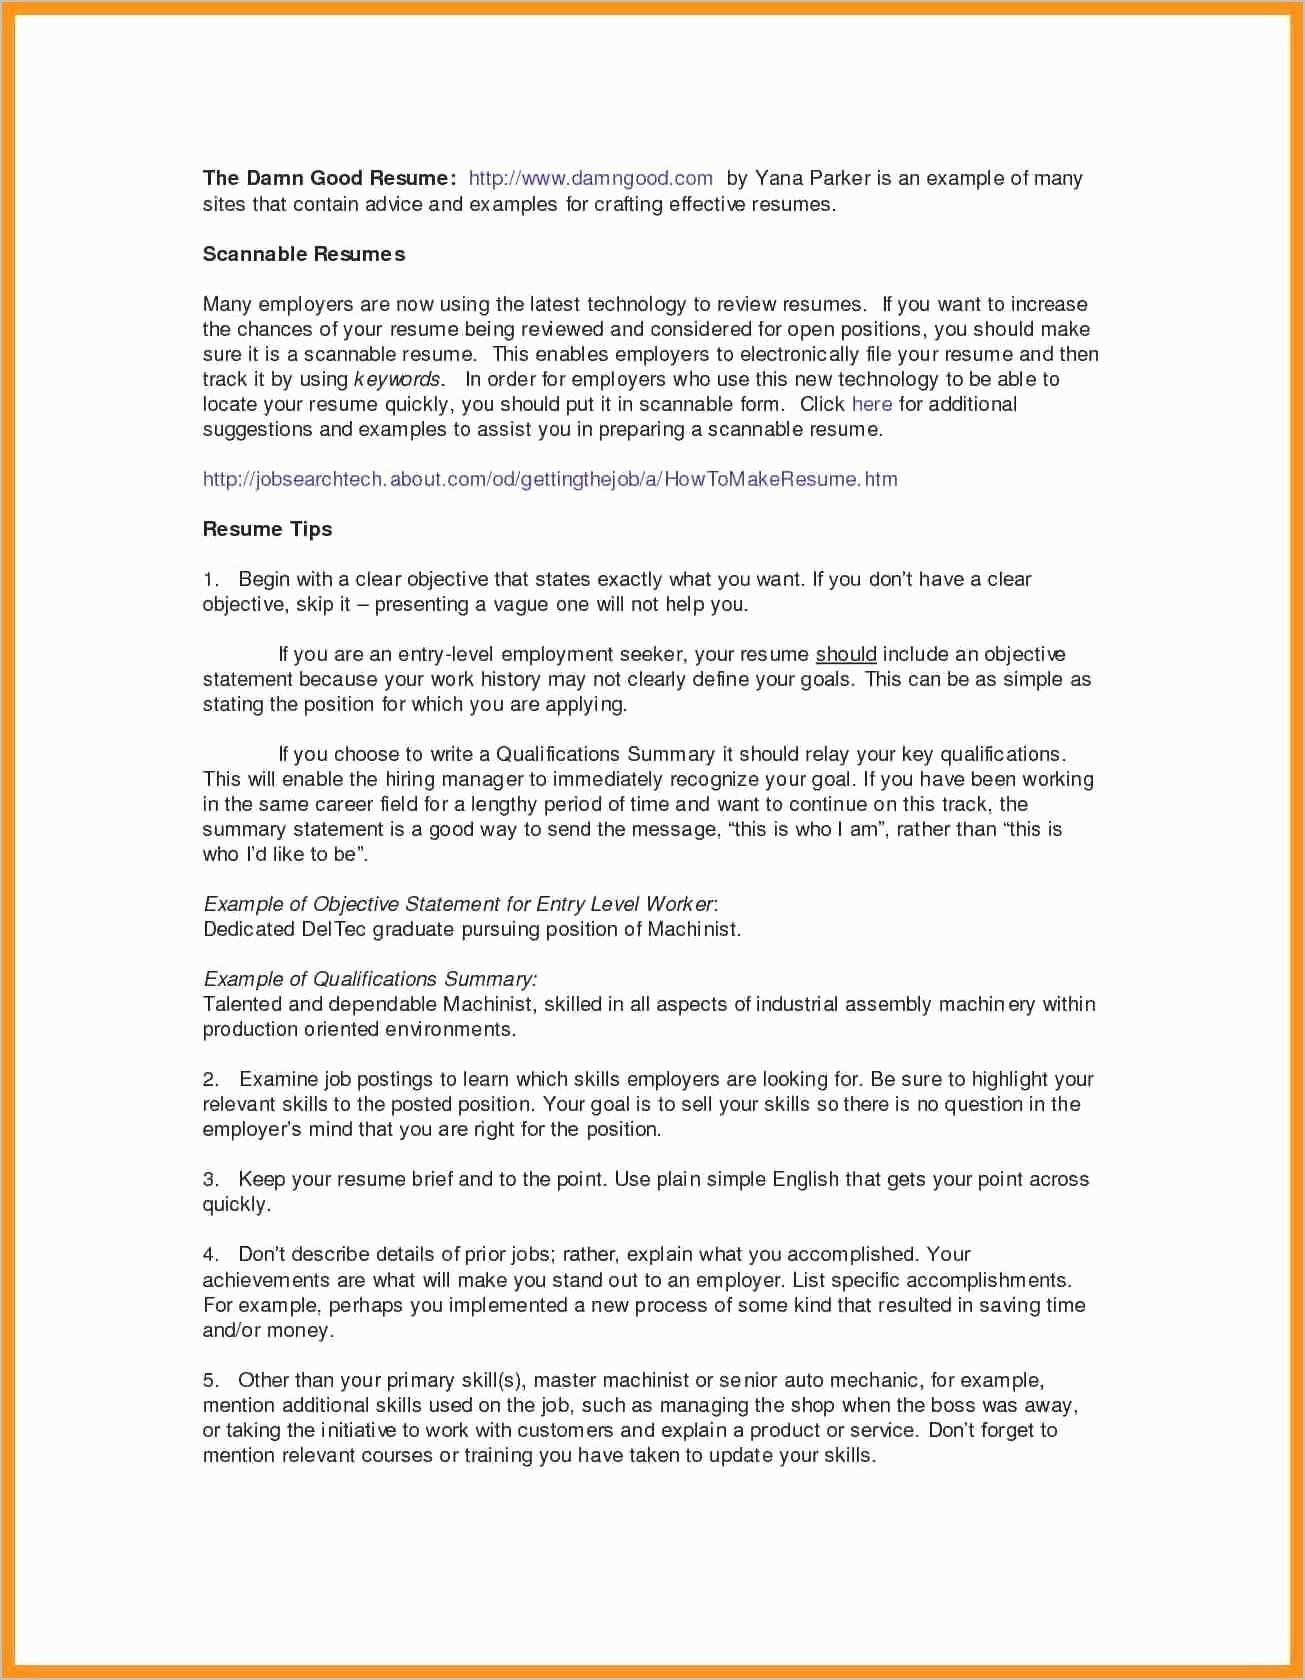 Should You Use A Resume Template - Objective Statement Resume Examples Best Resume Profile Summary